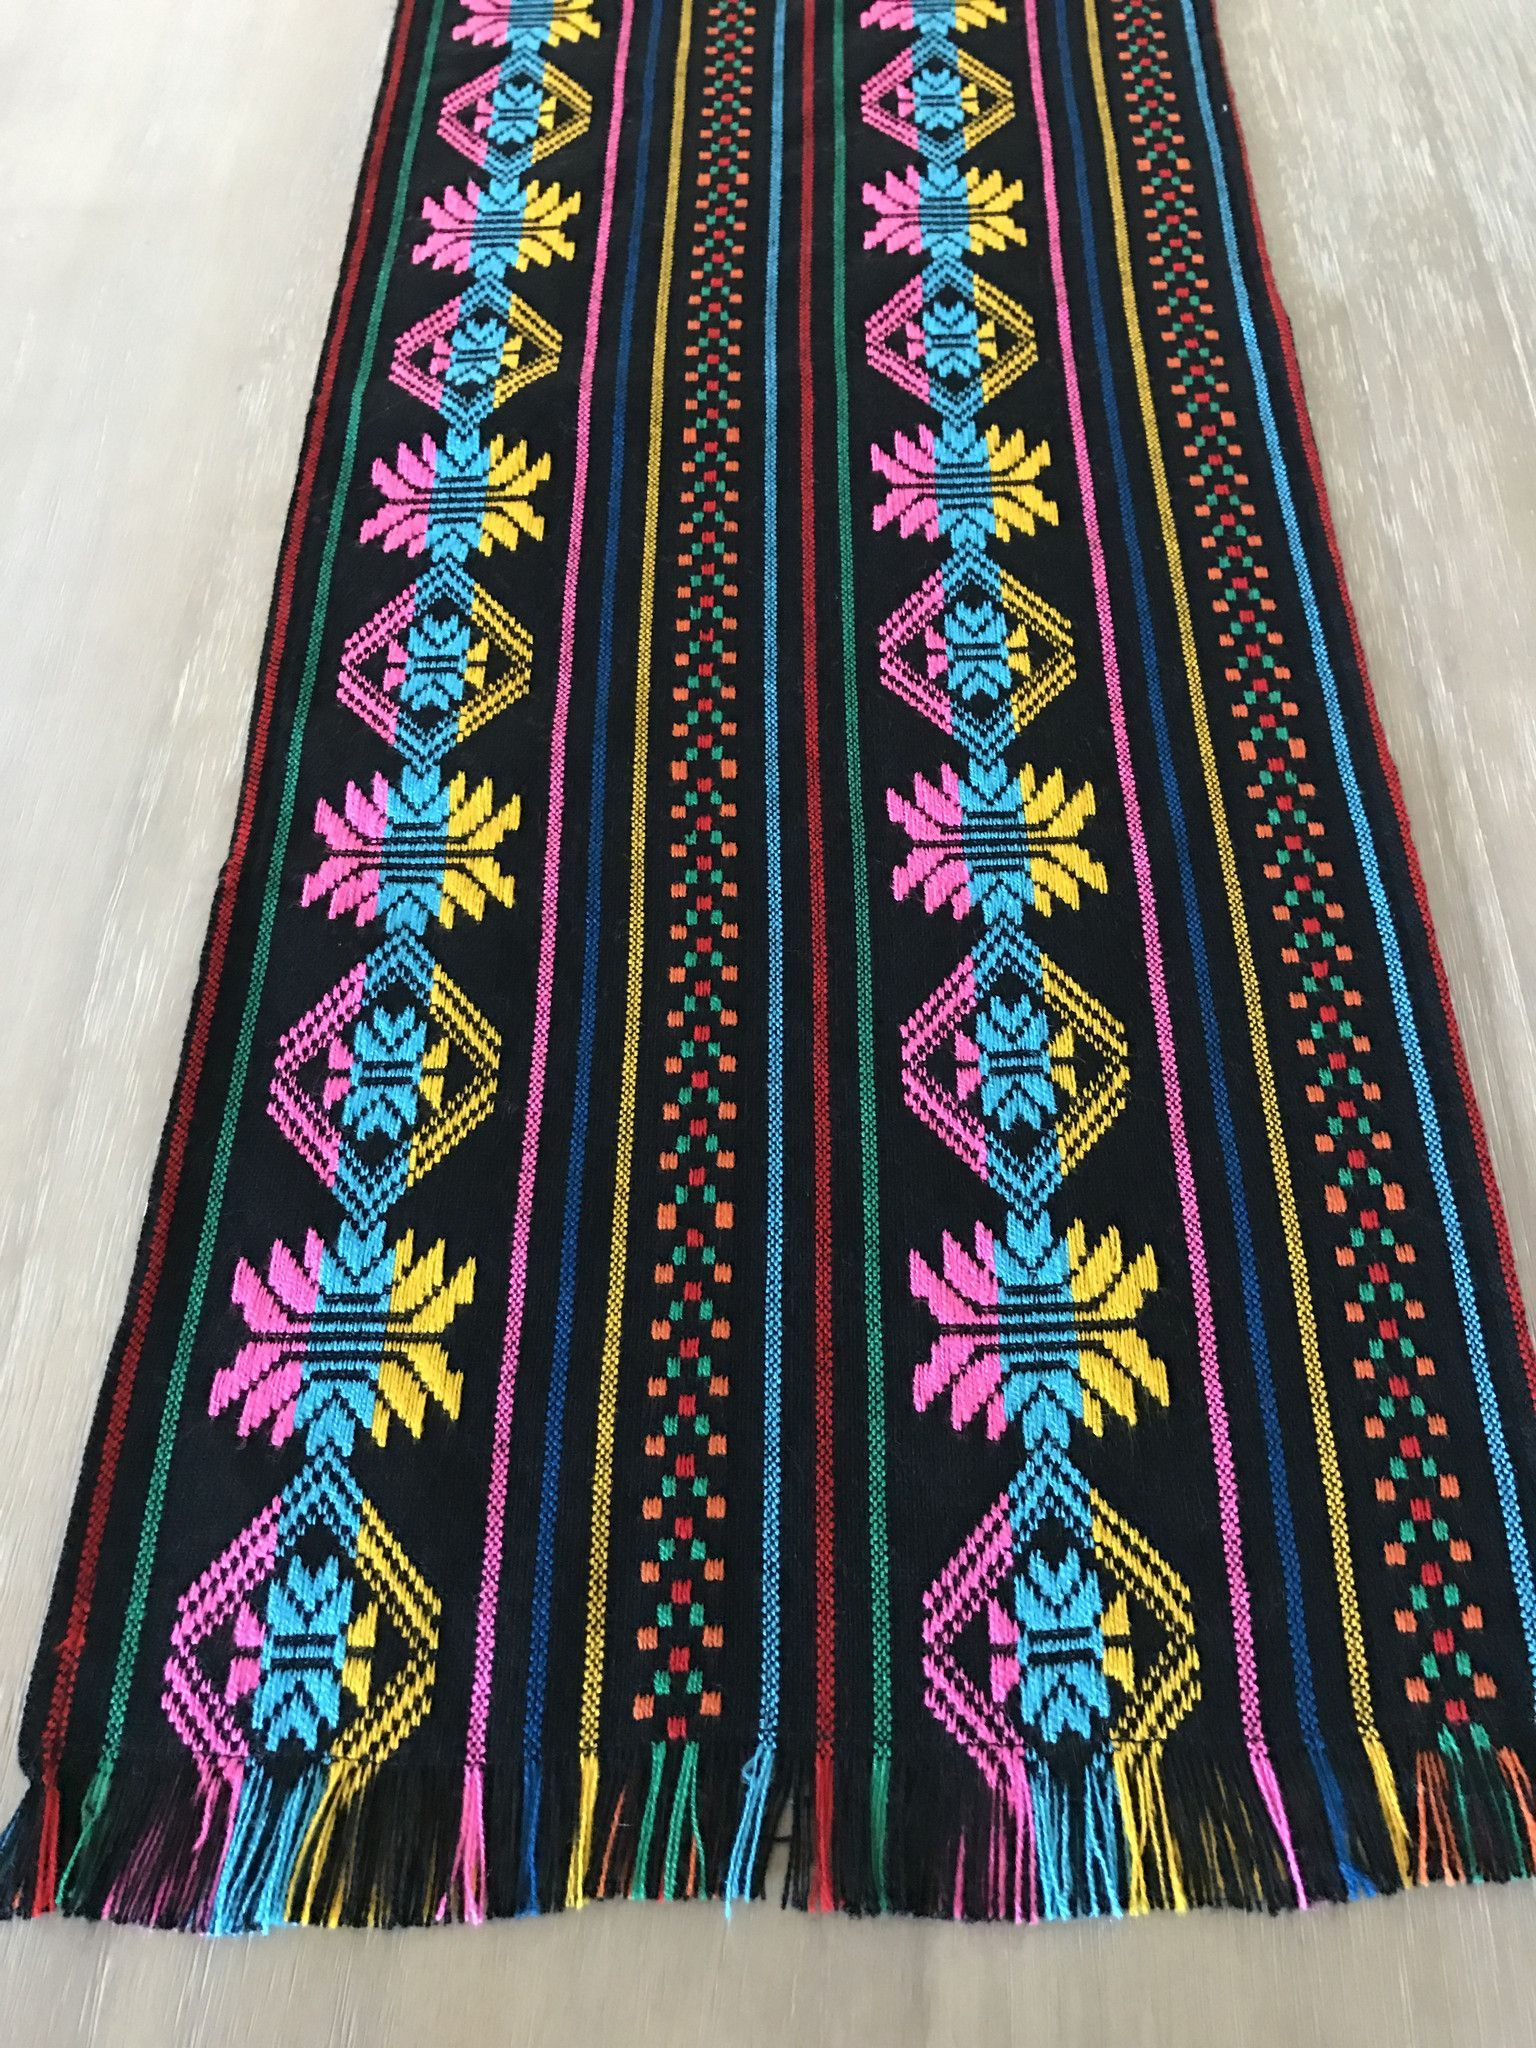 Superbe This Mexican Woven Black Table Runner Is Perfect For Your Next Fiesta!  Beach Wedding, Rustic Decor Or Boho Chic Table. Your Guests Will Love The  Bold Colors ...